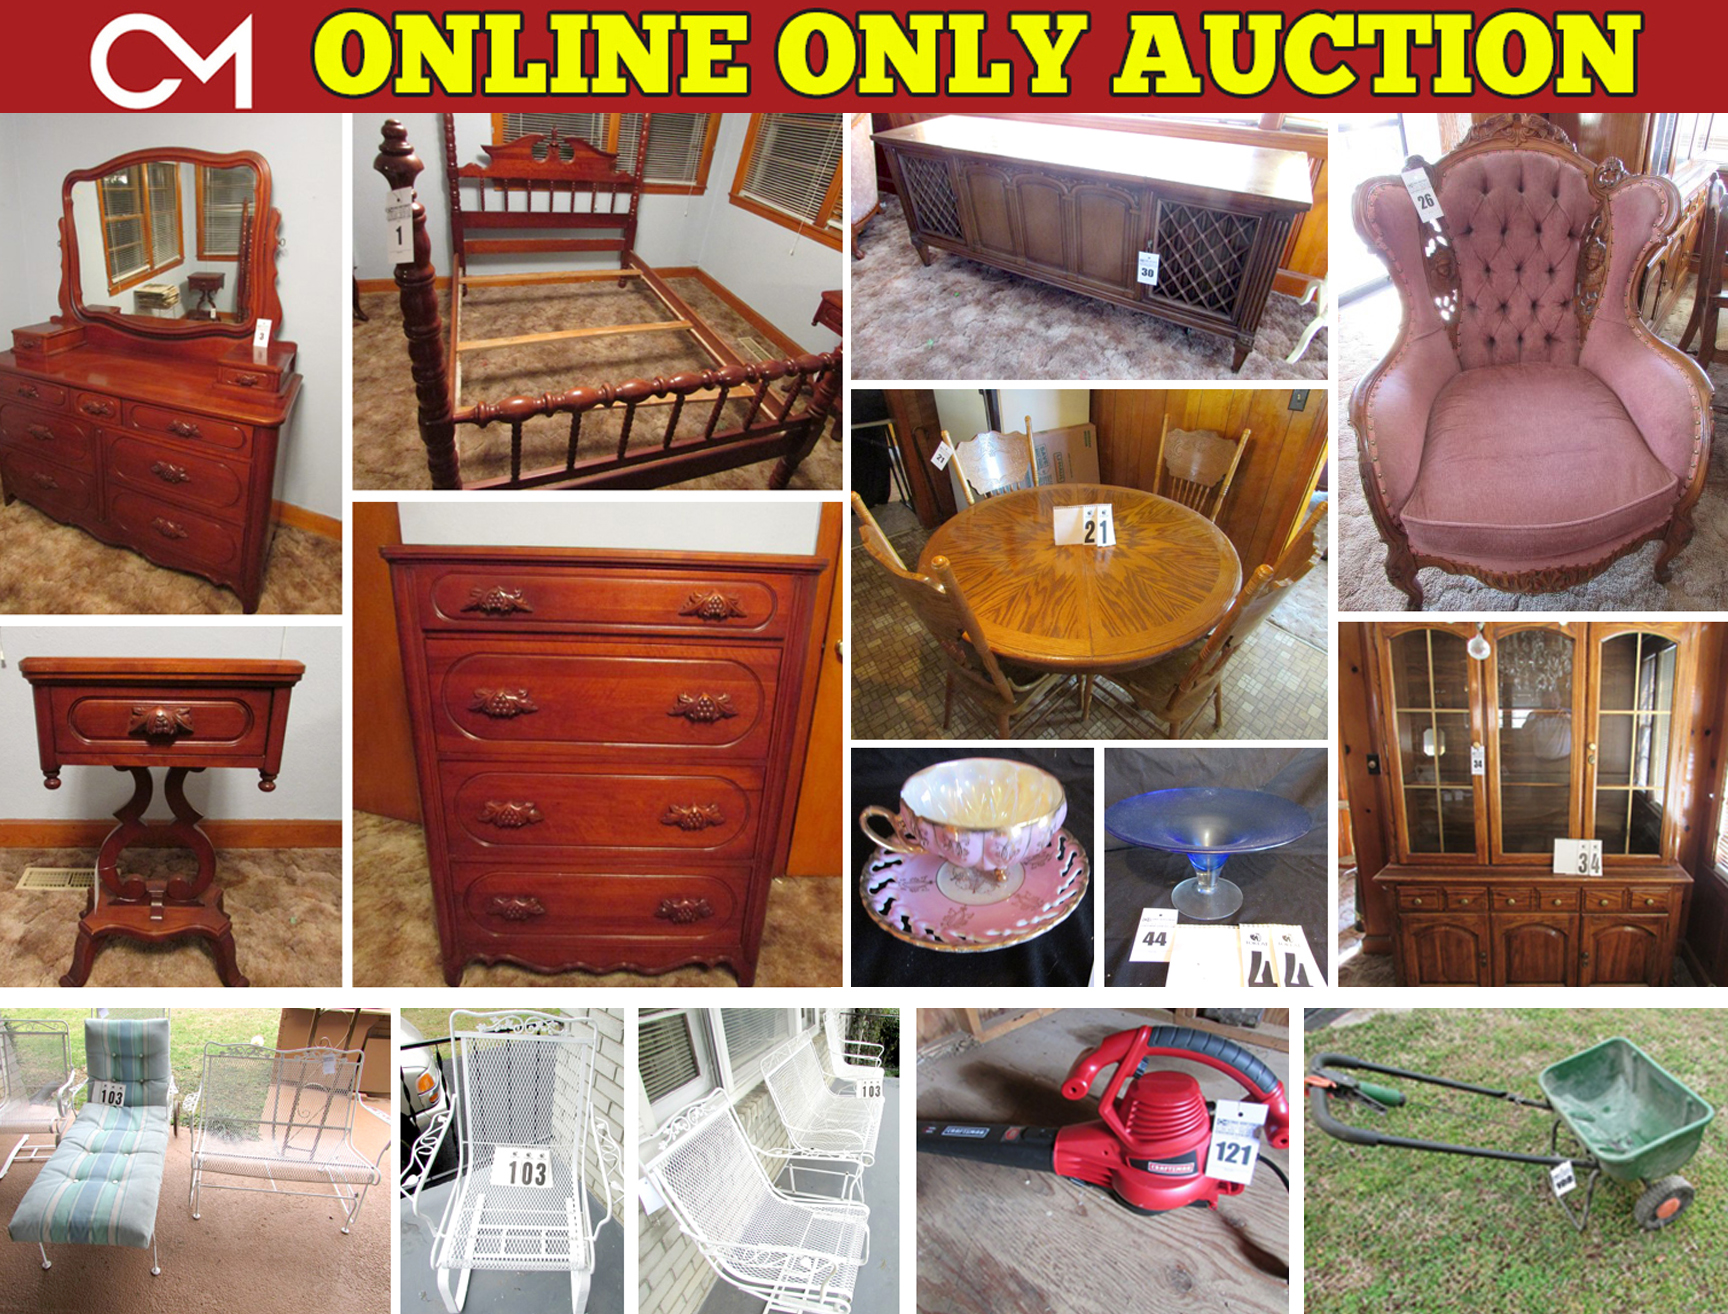 Personal Property Online Only Estate Auction Davis Cabinet Furniture Tools Lawn Equipment